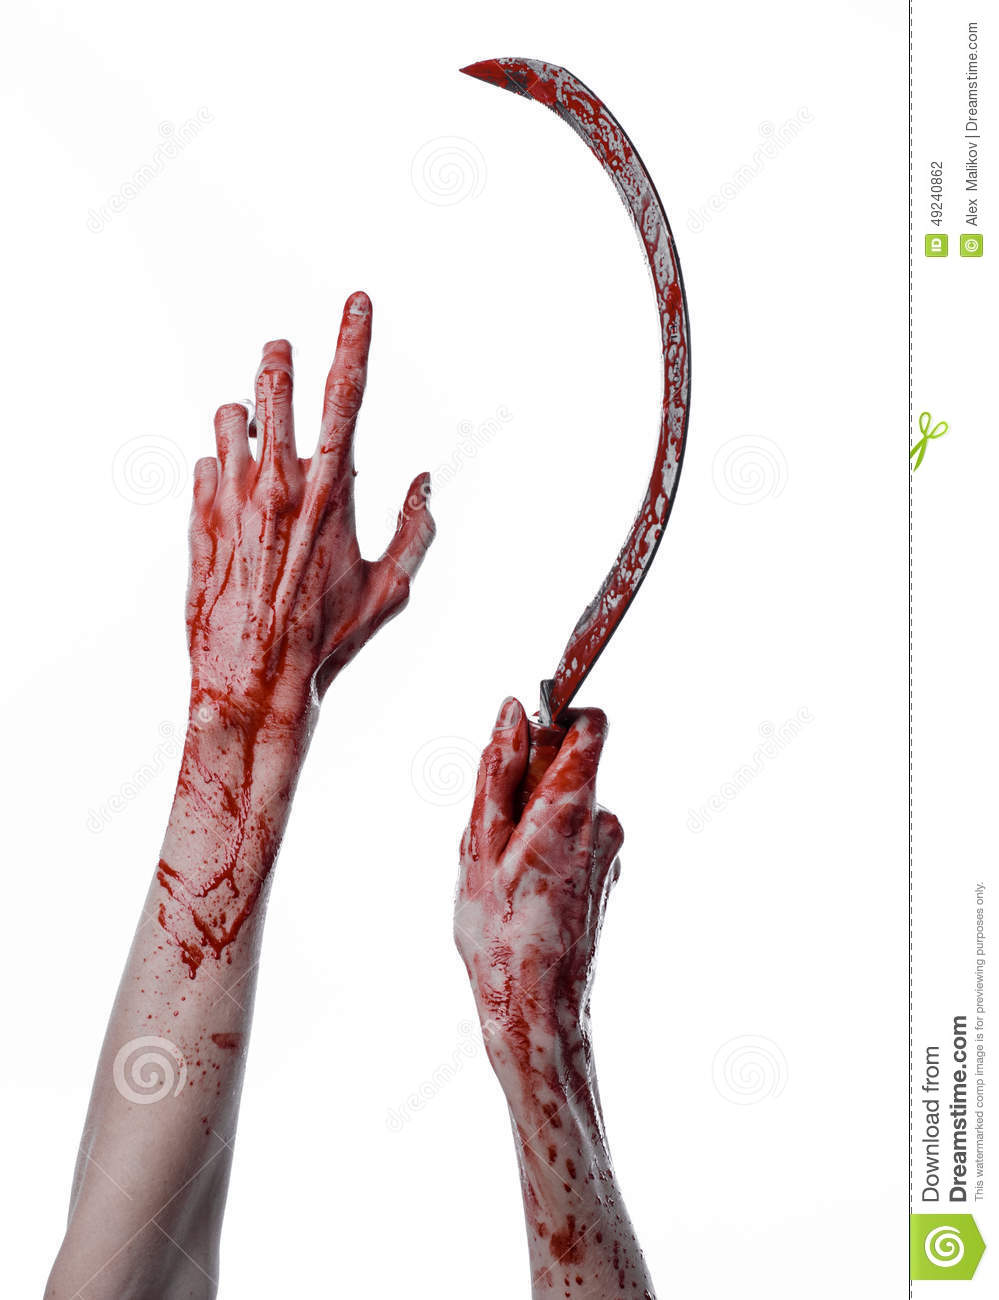 bloody hand holding - photo #6